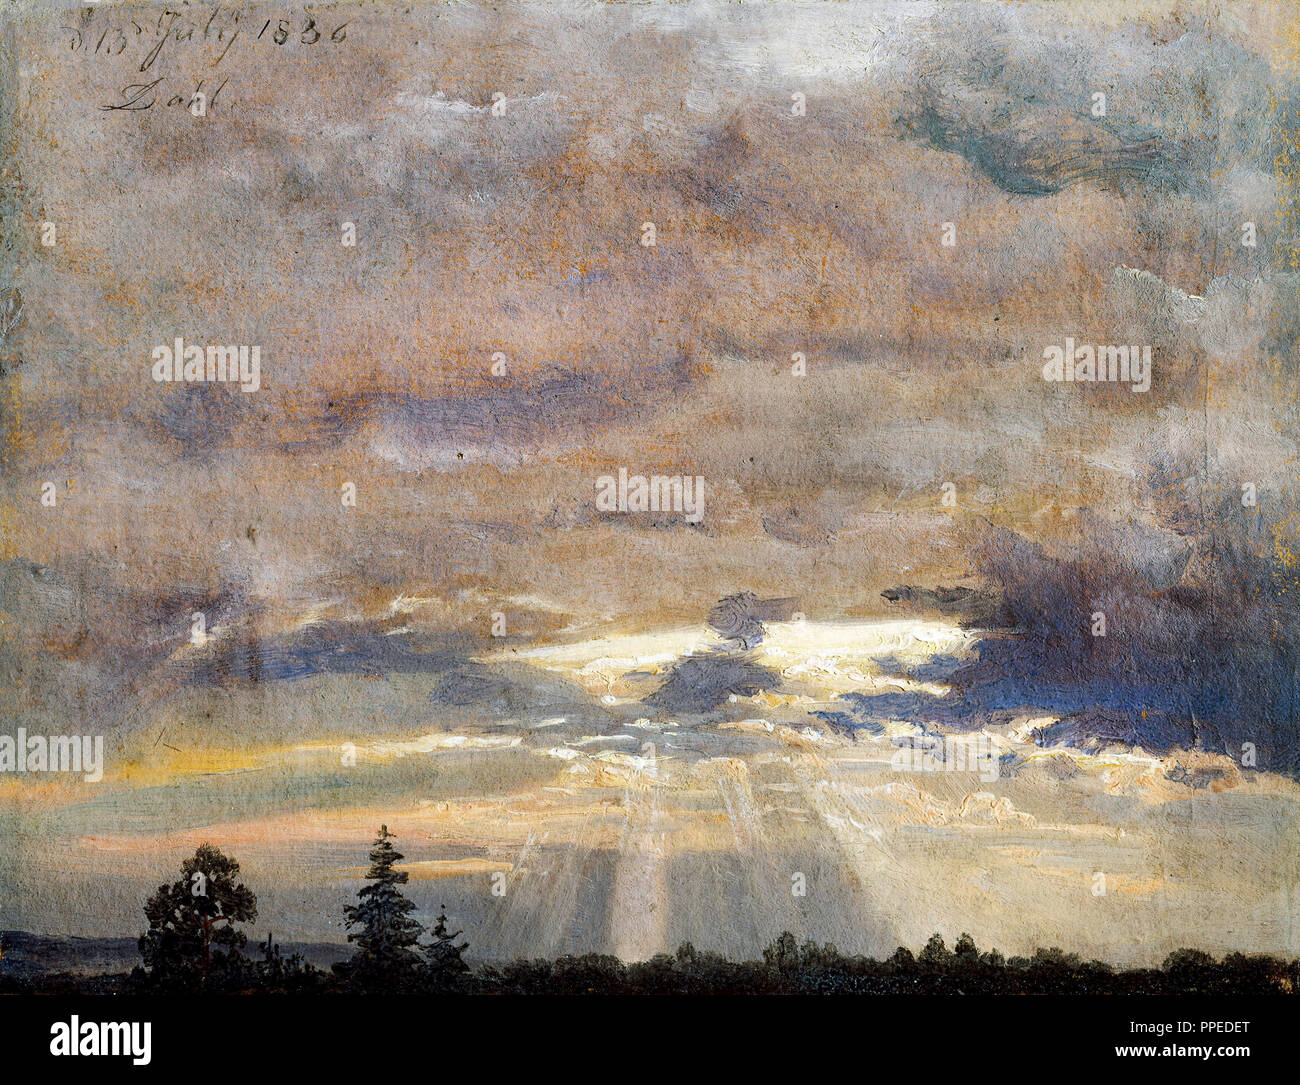 Johan Christian Dahl - Cloud Study with Sunbeams 1836 Oil on paper. National Gallery of Norway, Oslo, Norway. - Stock Image